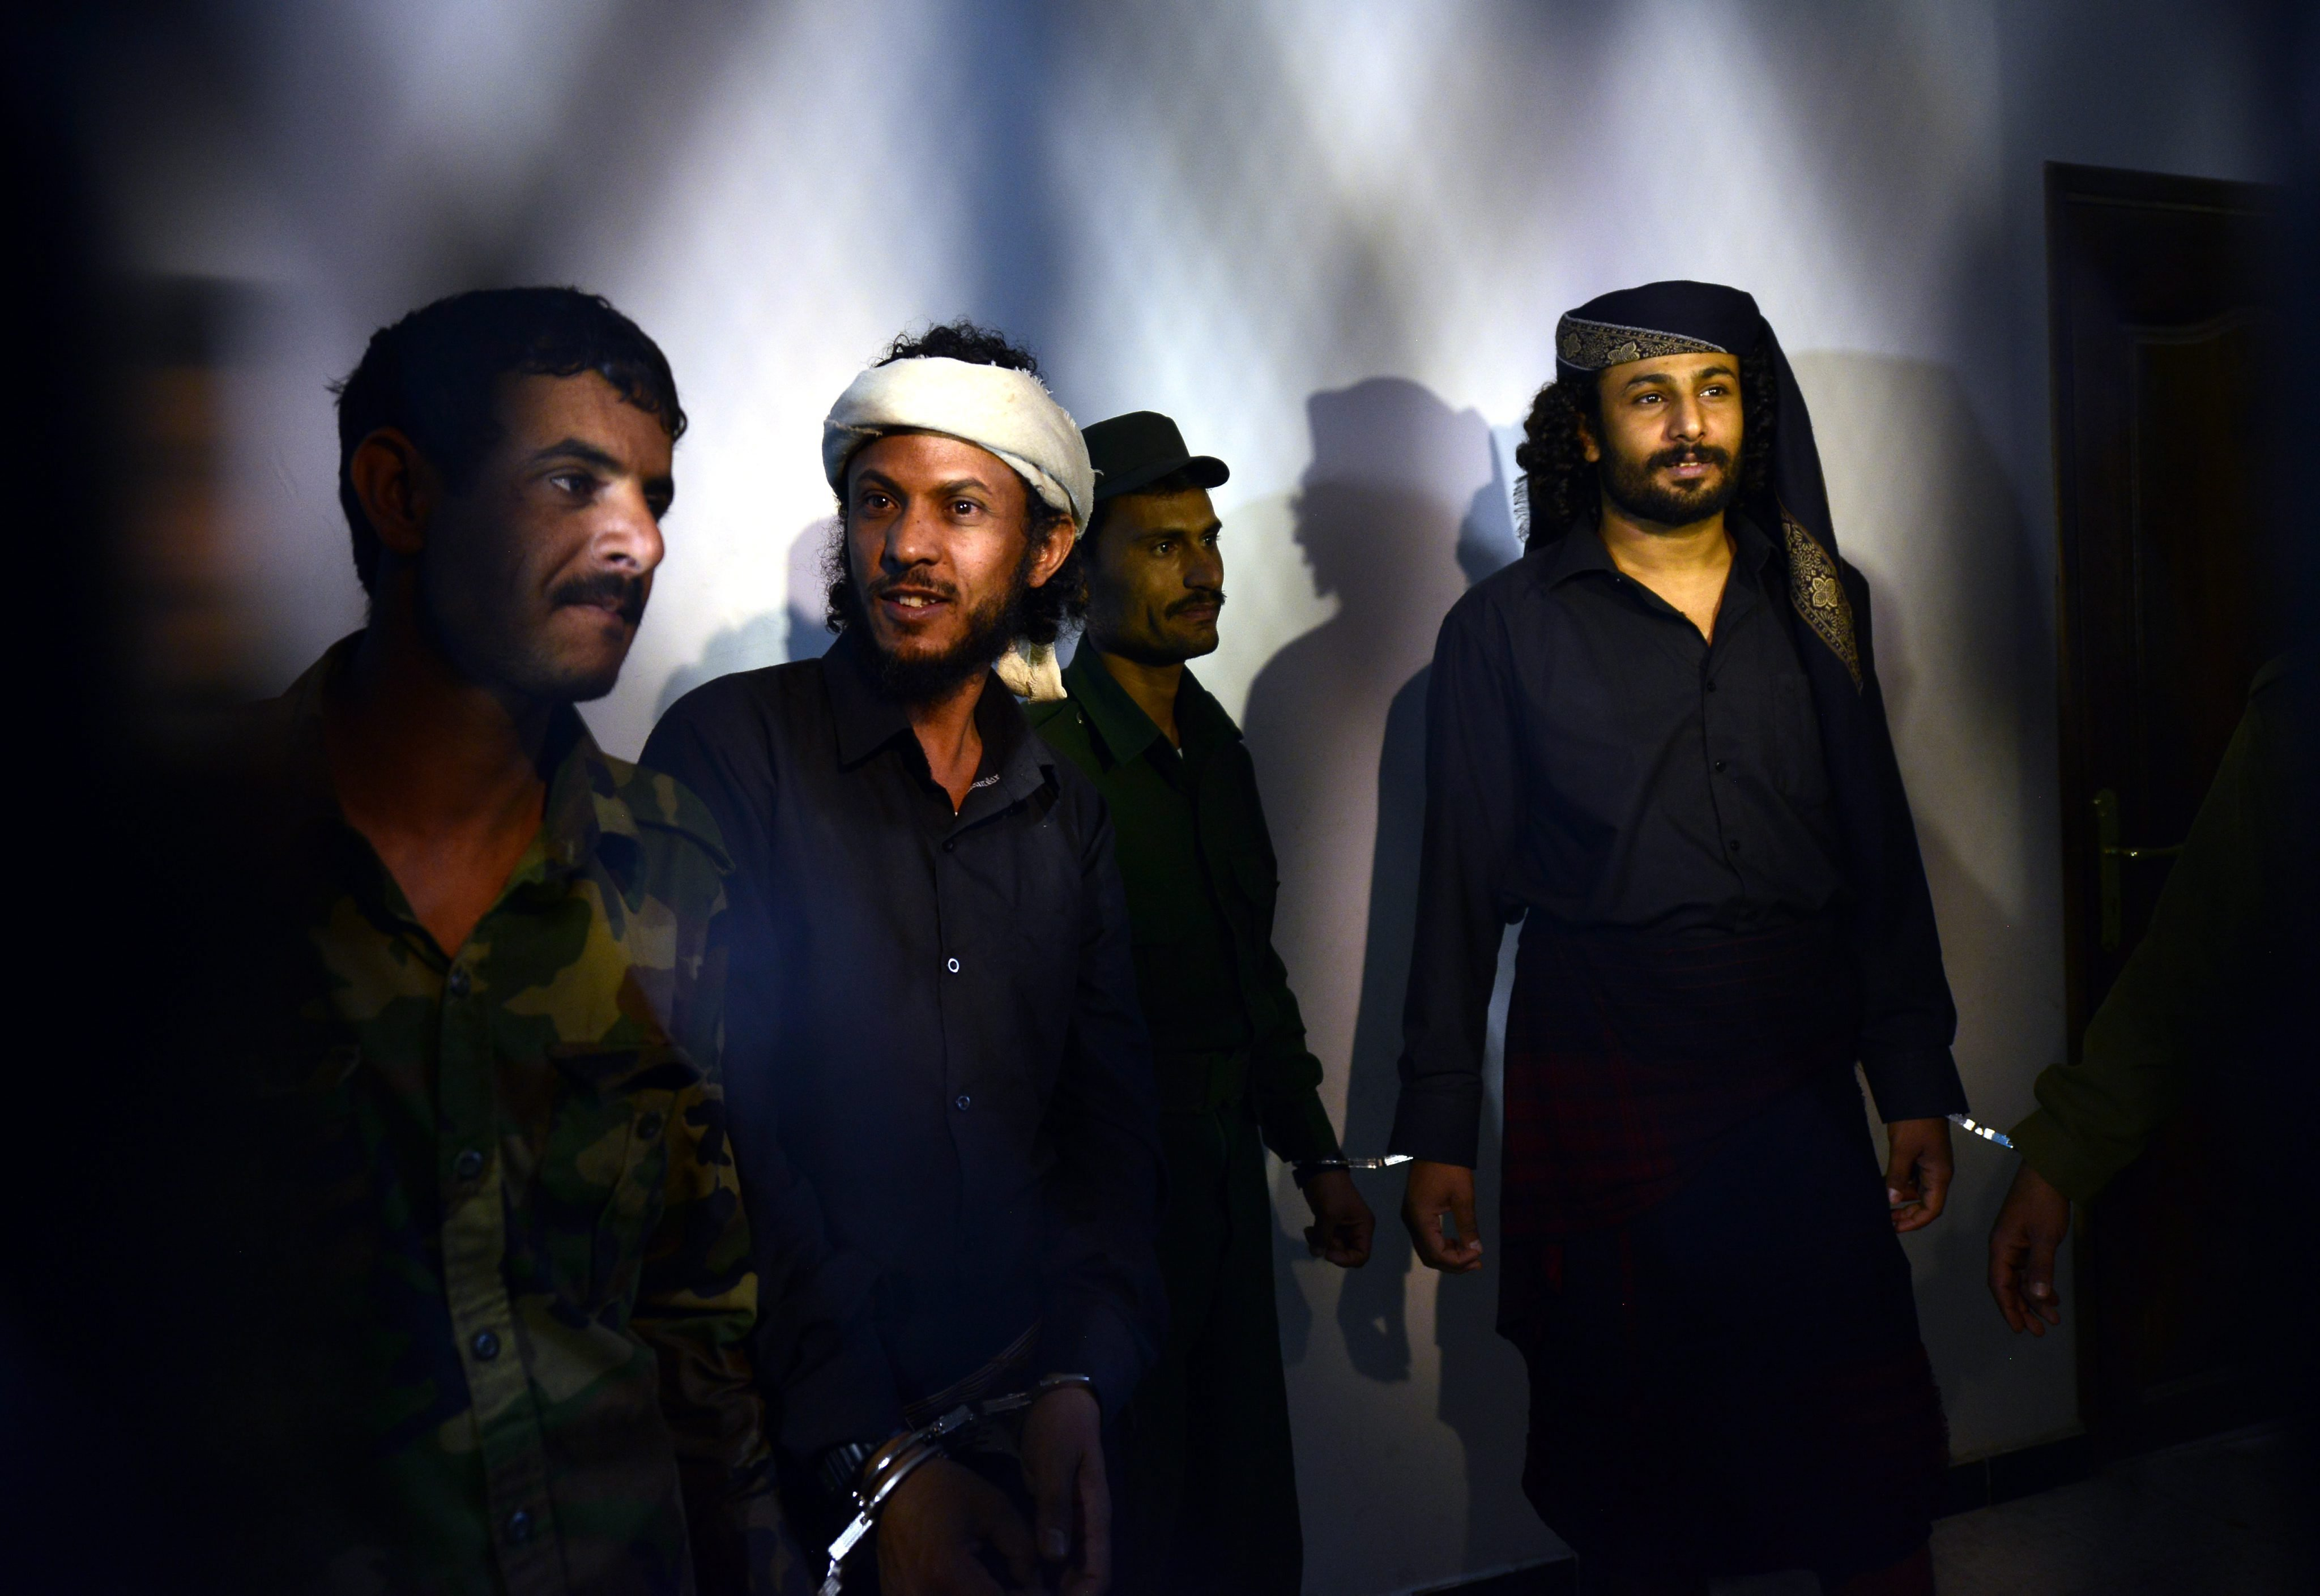 Al-Qaeda militants Sami Dayan, right, and Farhan al-Saadi, third from right, are escorted by soldiers during the sentence hearing at the state security court in Sana'a, Yemen on April  22, 2014.